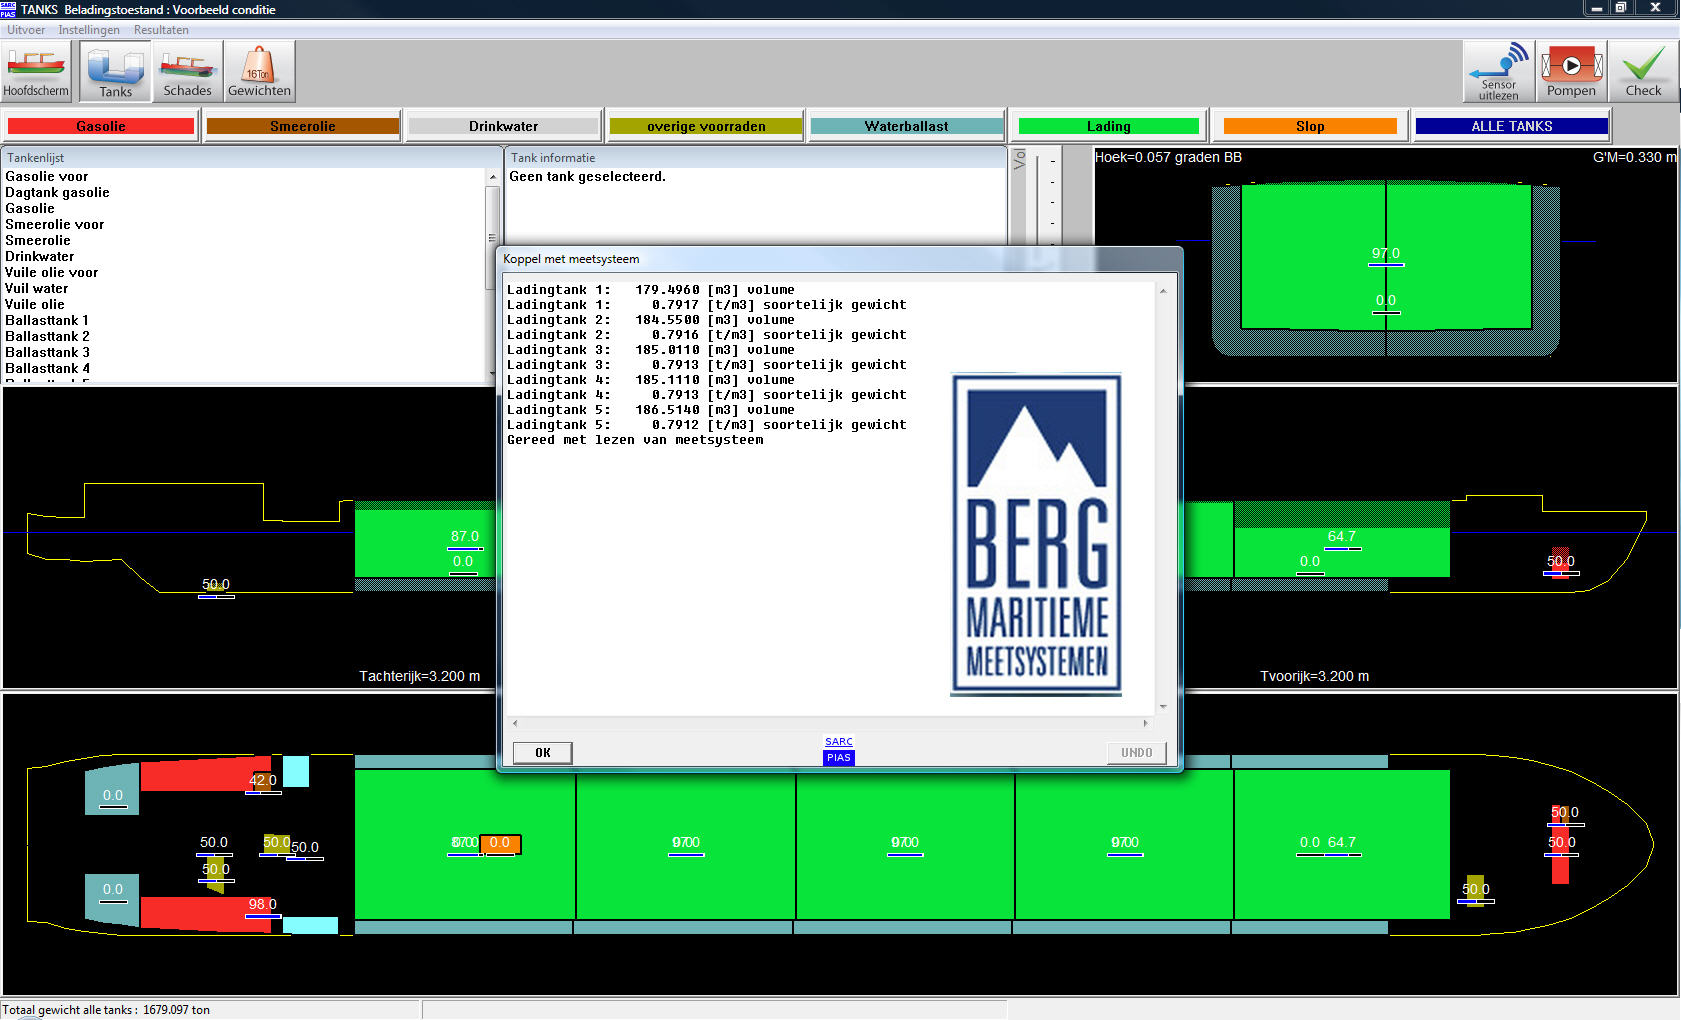 interface with BERG Maritieme Meetsystemen